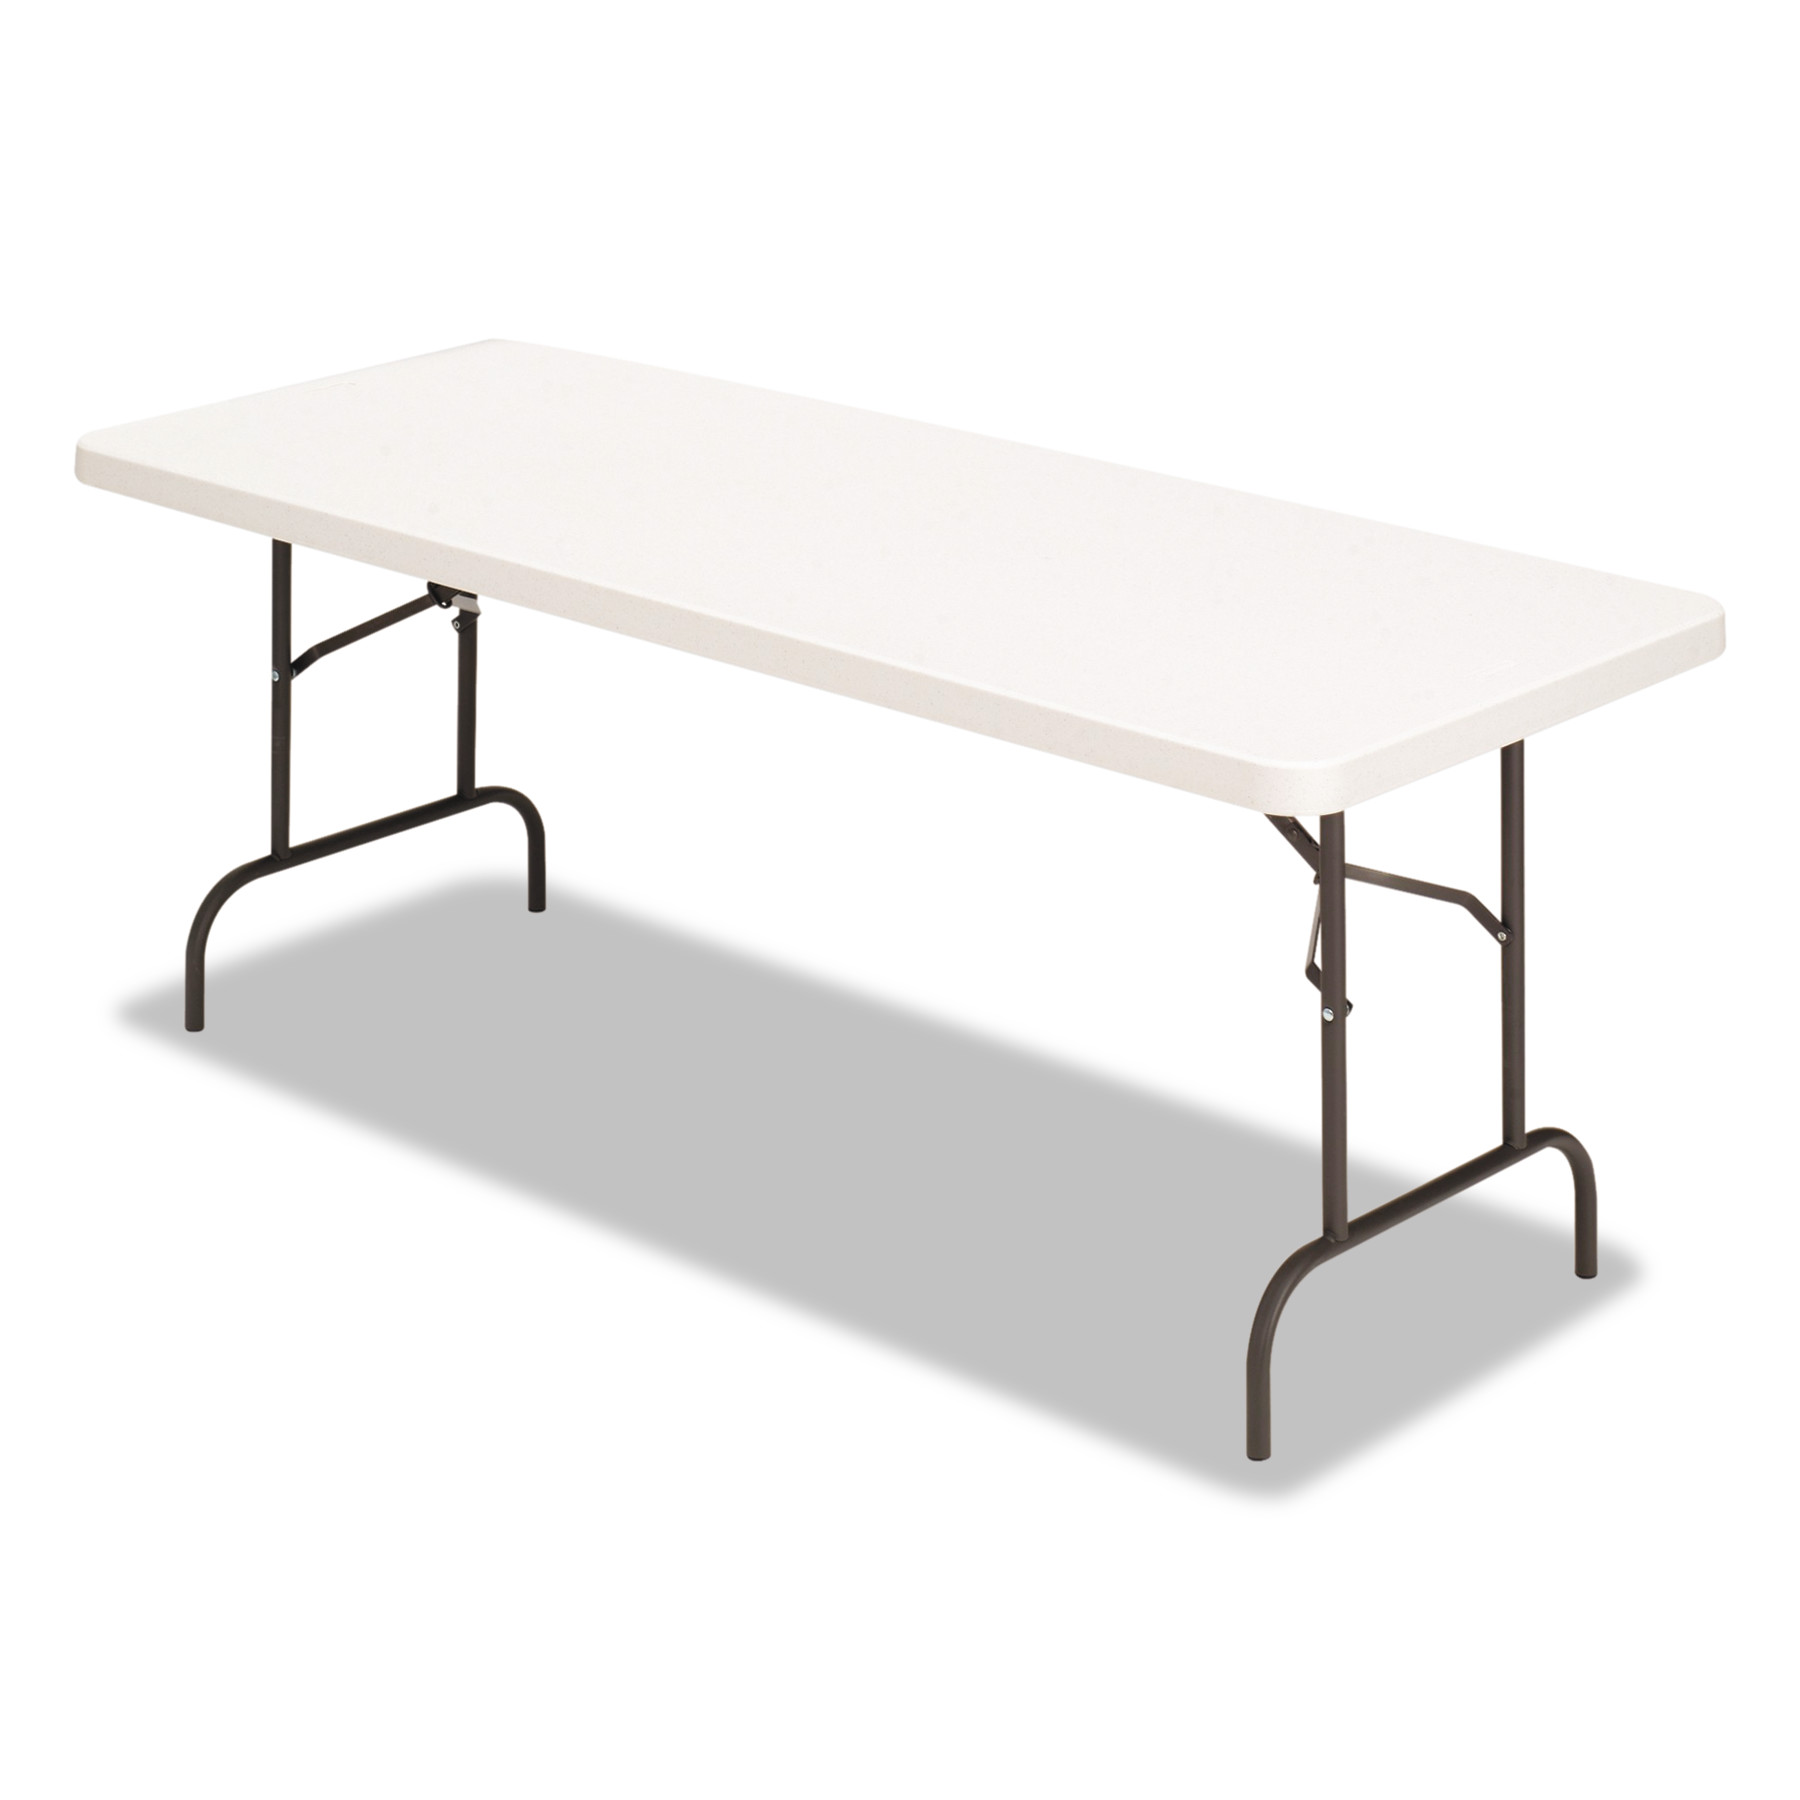 Alera Banquet Folding Table, Rectangular, Radius Edge, 60 x 30 x 29, Platinum Charcoal by ALERA